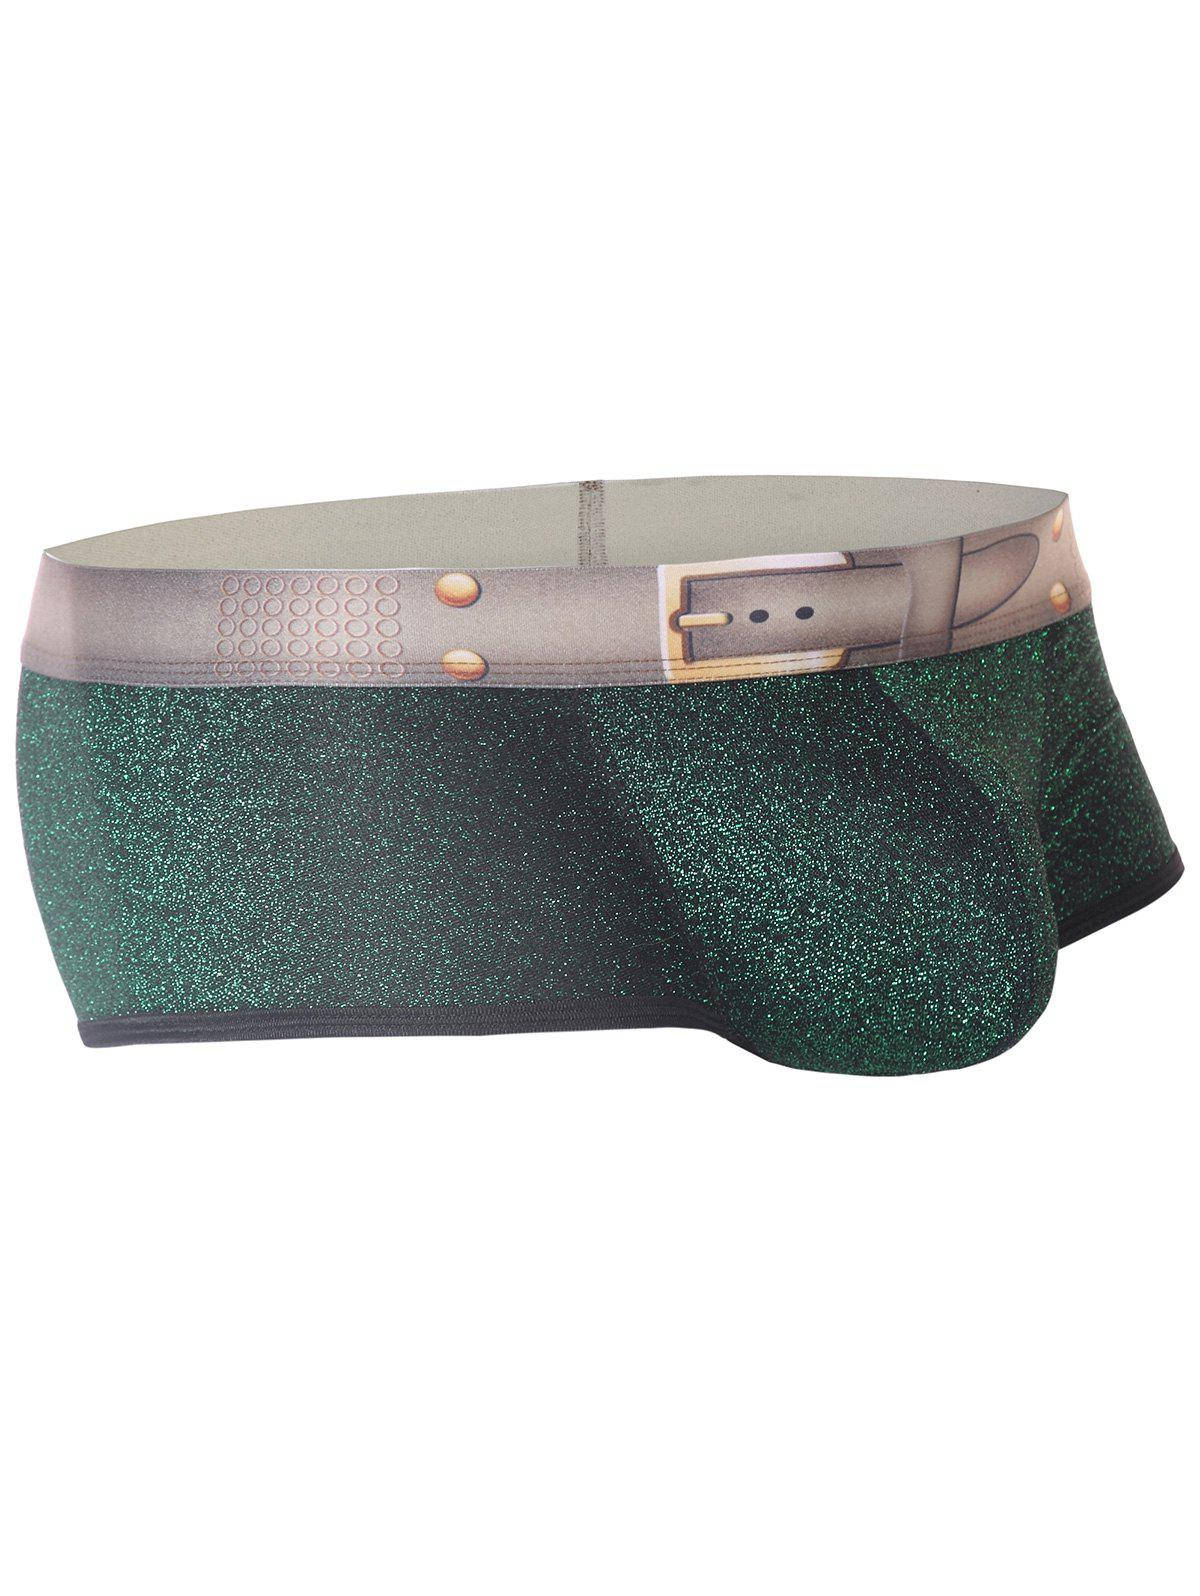 Twinkling Printed U Pouch Design Trunk - GREEN M